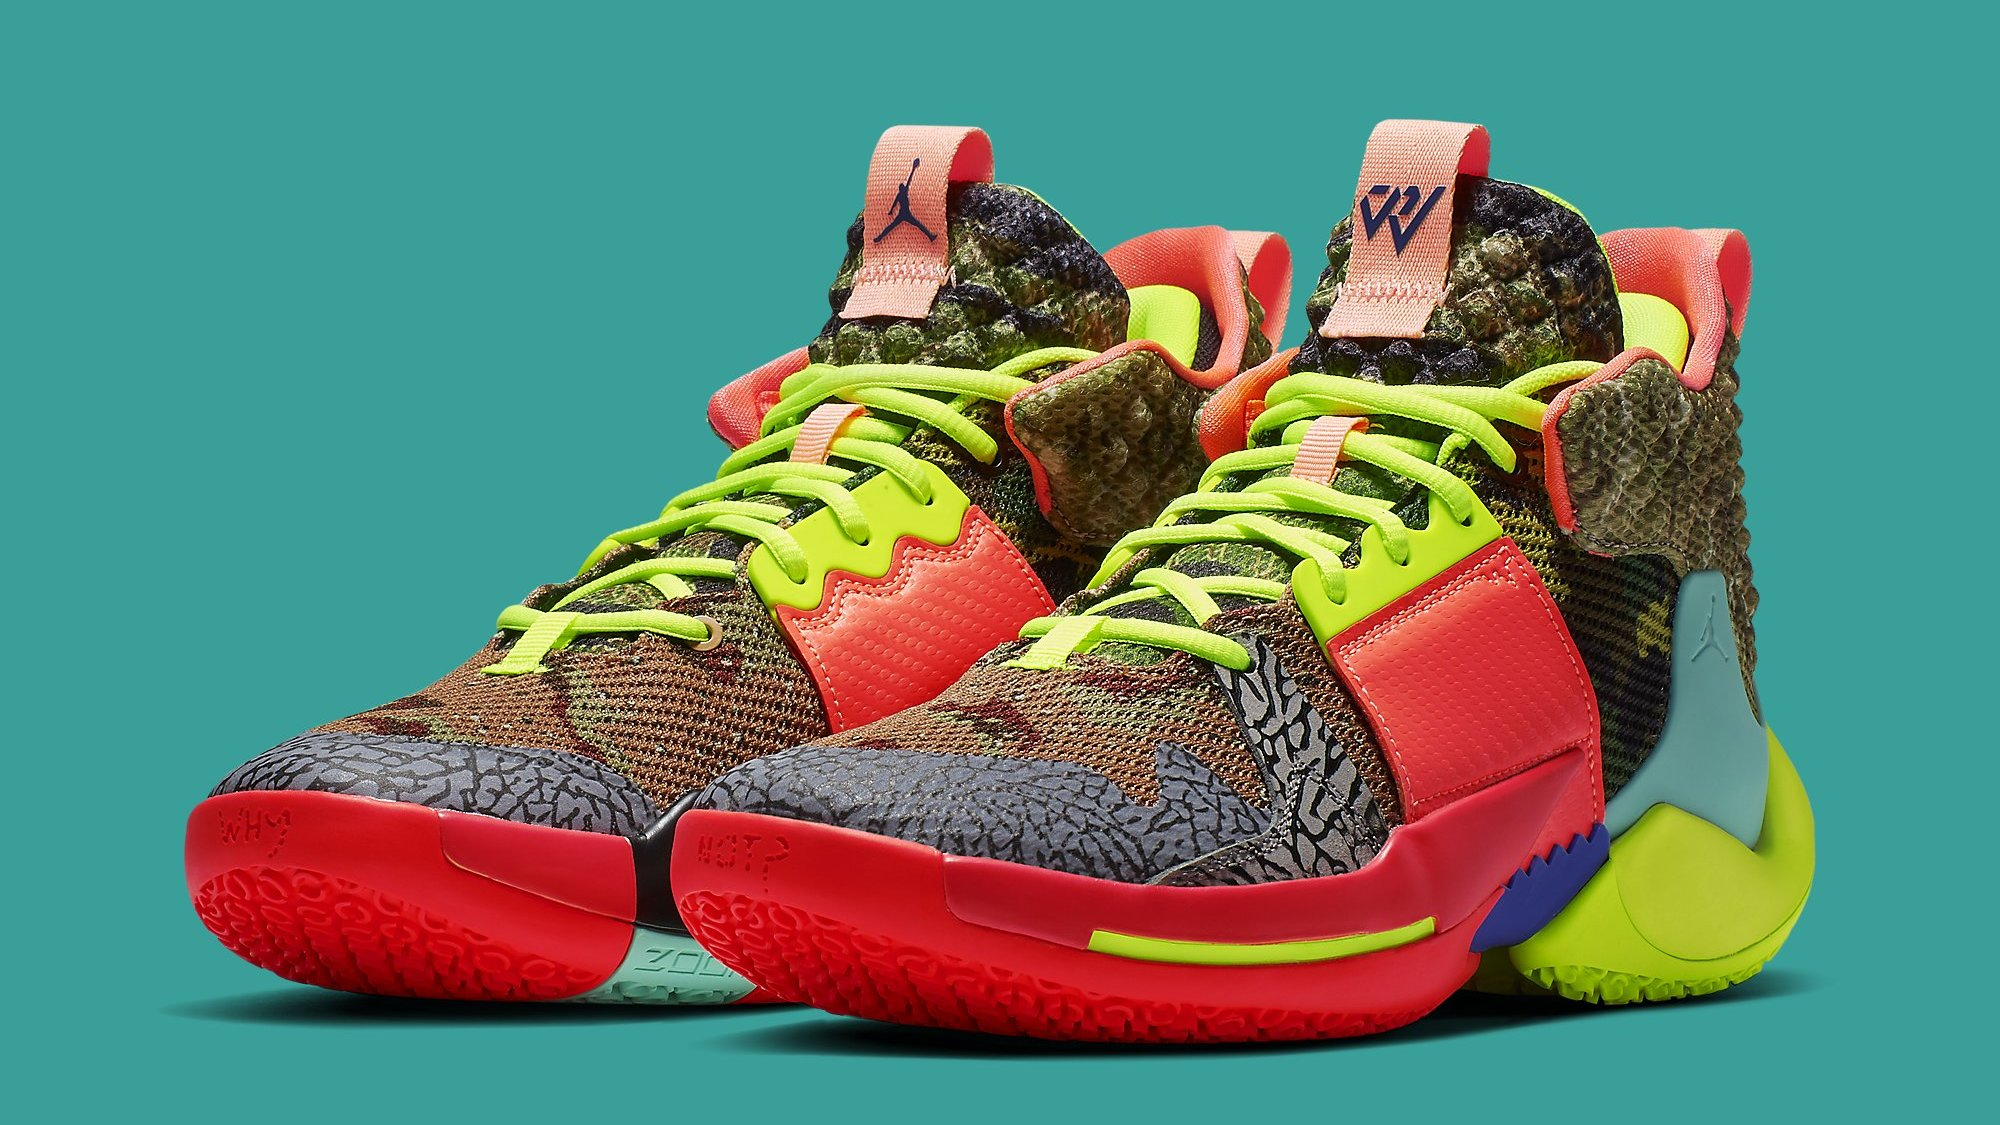 598191c89 Jordan Why Not Zer0.2  All-Star  Camo Green Hyper Turquoise-Volt-Infrared  CI6875-300 Release Date